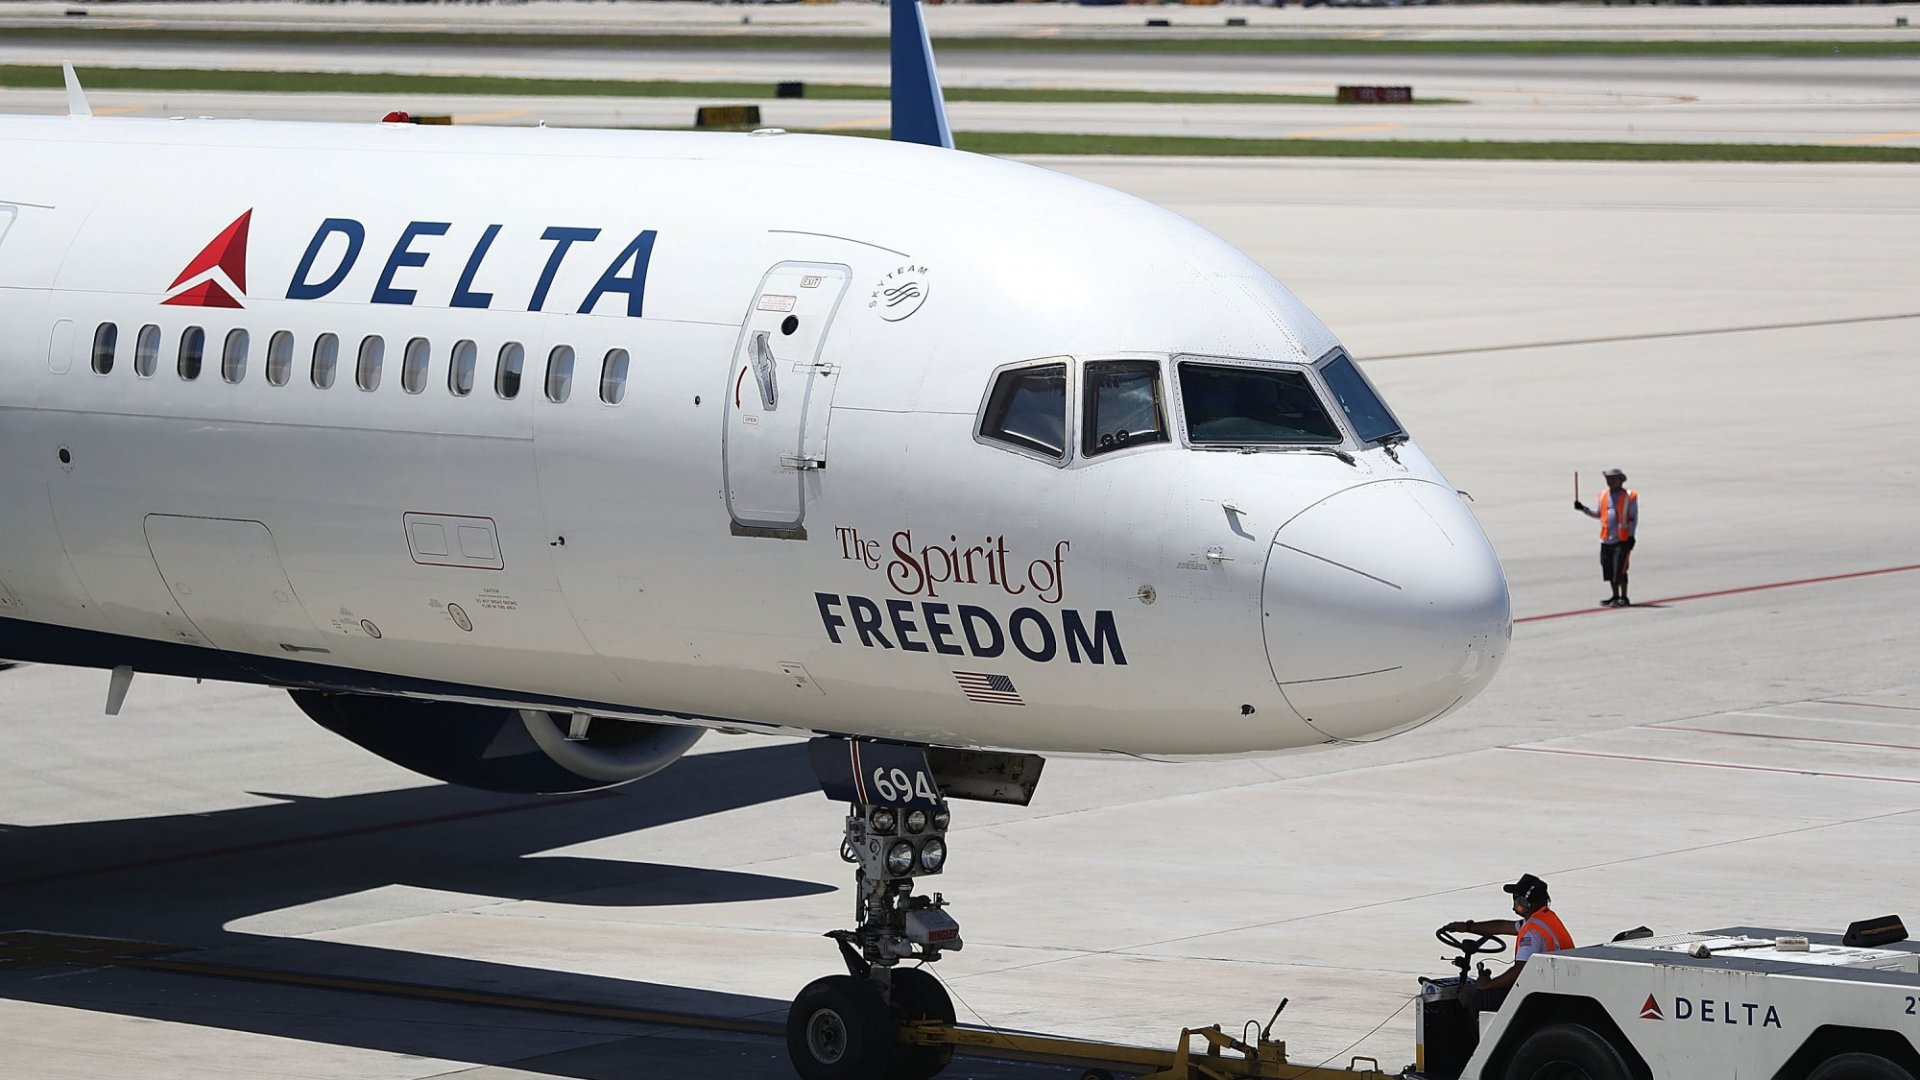 Delta Just Announced Major Upgrades to Inflight Service That Could Make Passengers on Long International Flights a Lot Happier